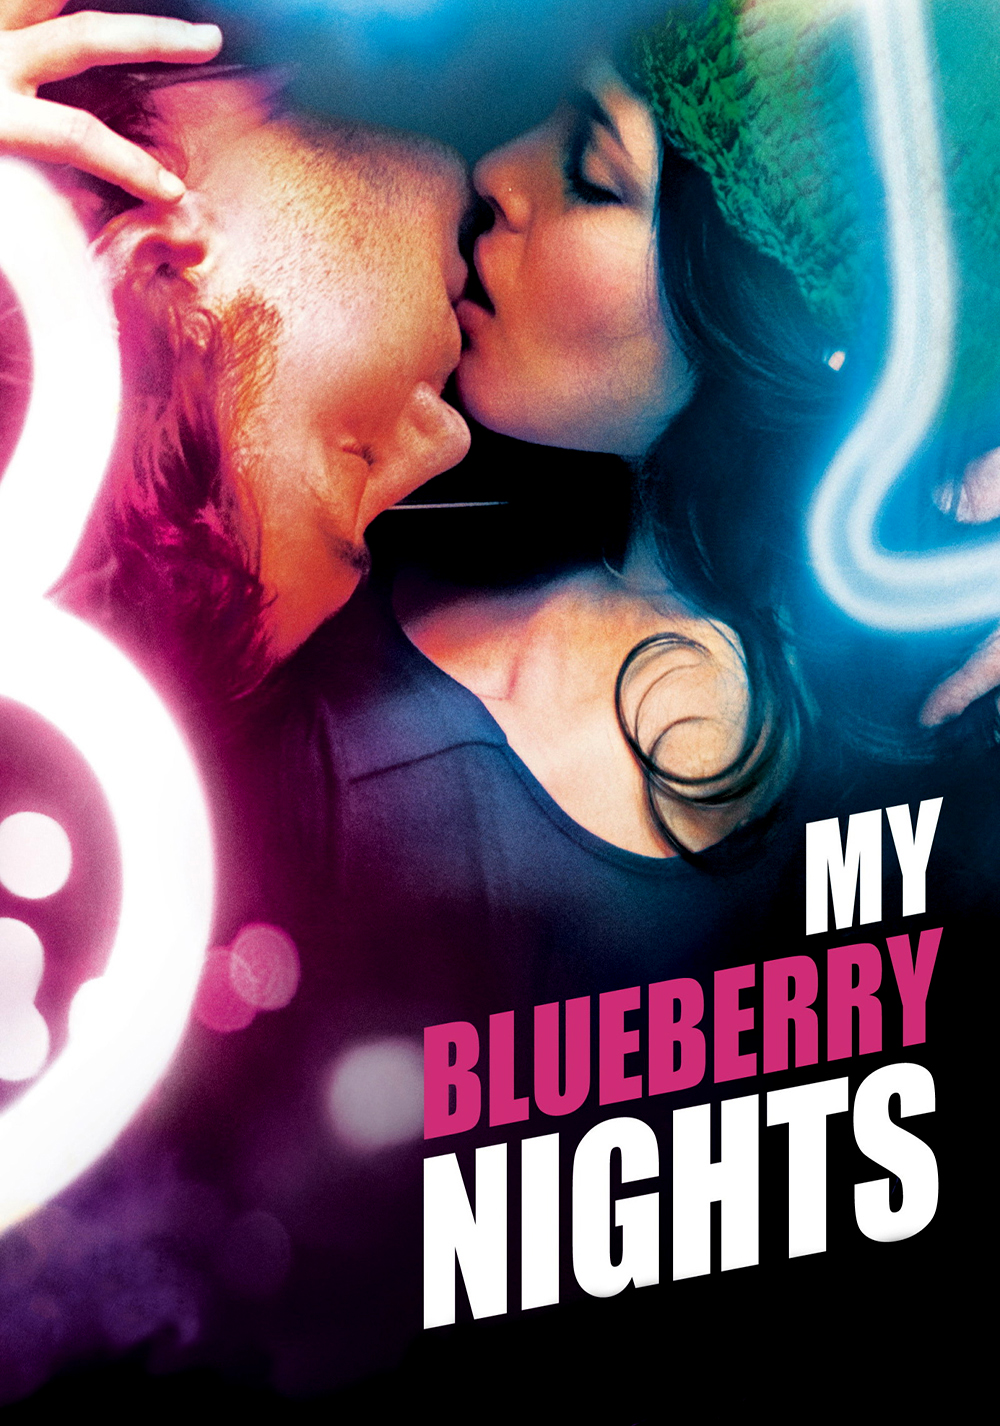 my-blueberry-nights-55874aef8be40.jpg